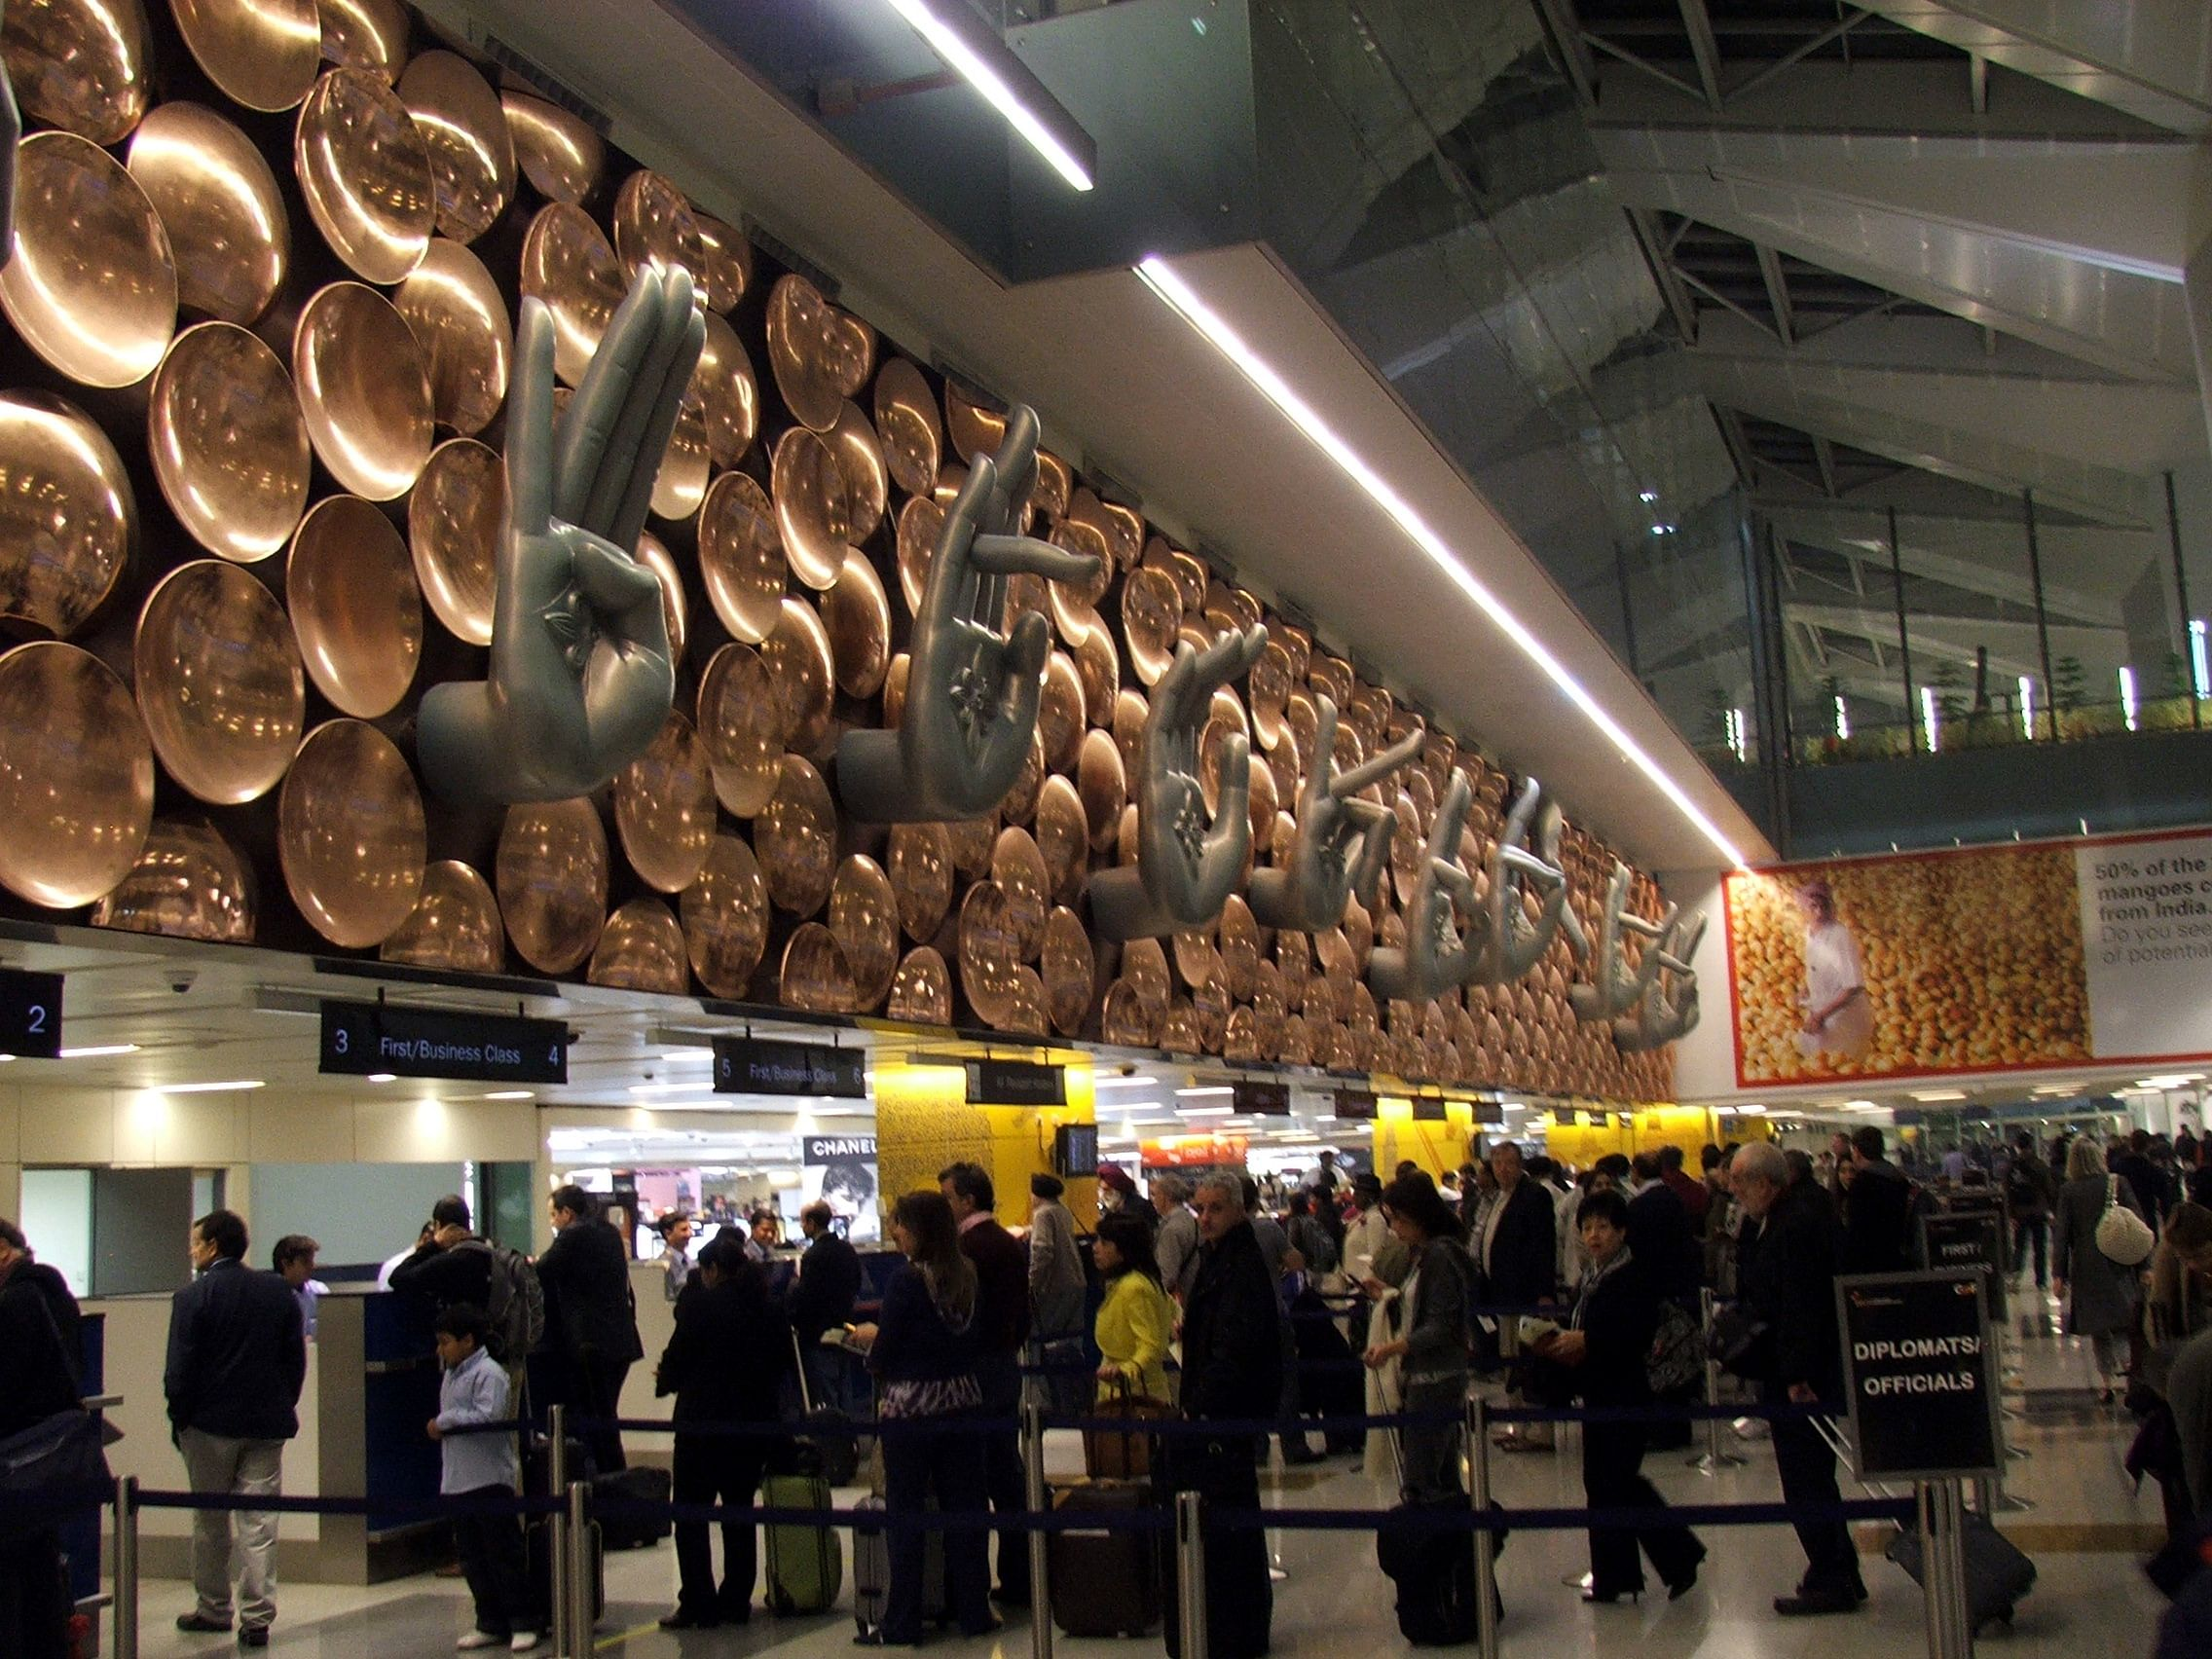 Mudras at arrival of T3 terminal, Delhi. Picture Source: Krokodyl/Wikimedia